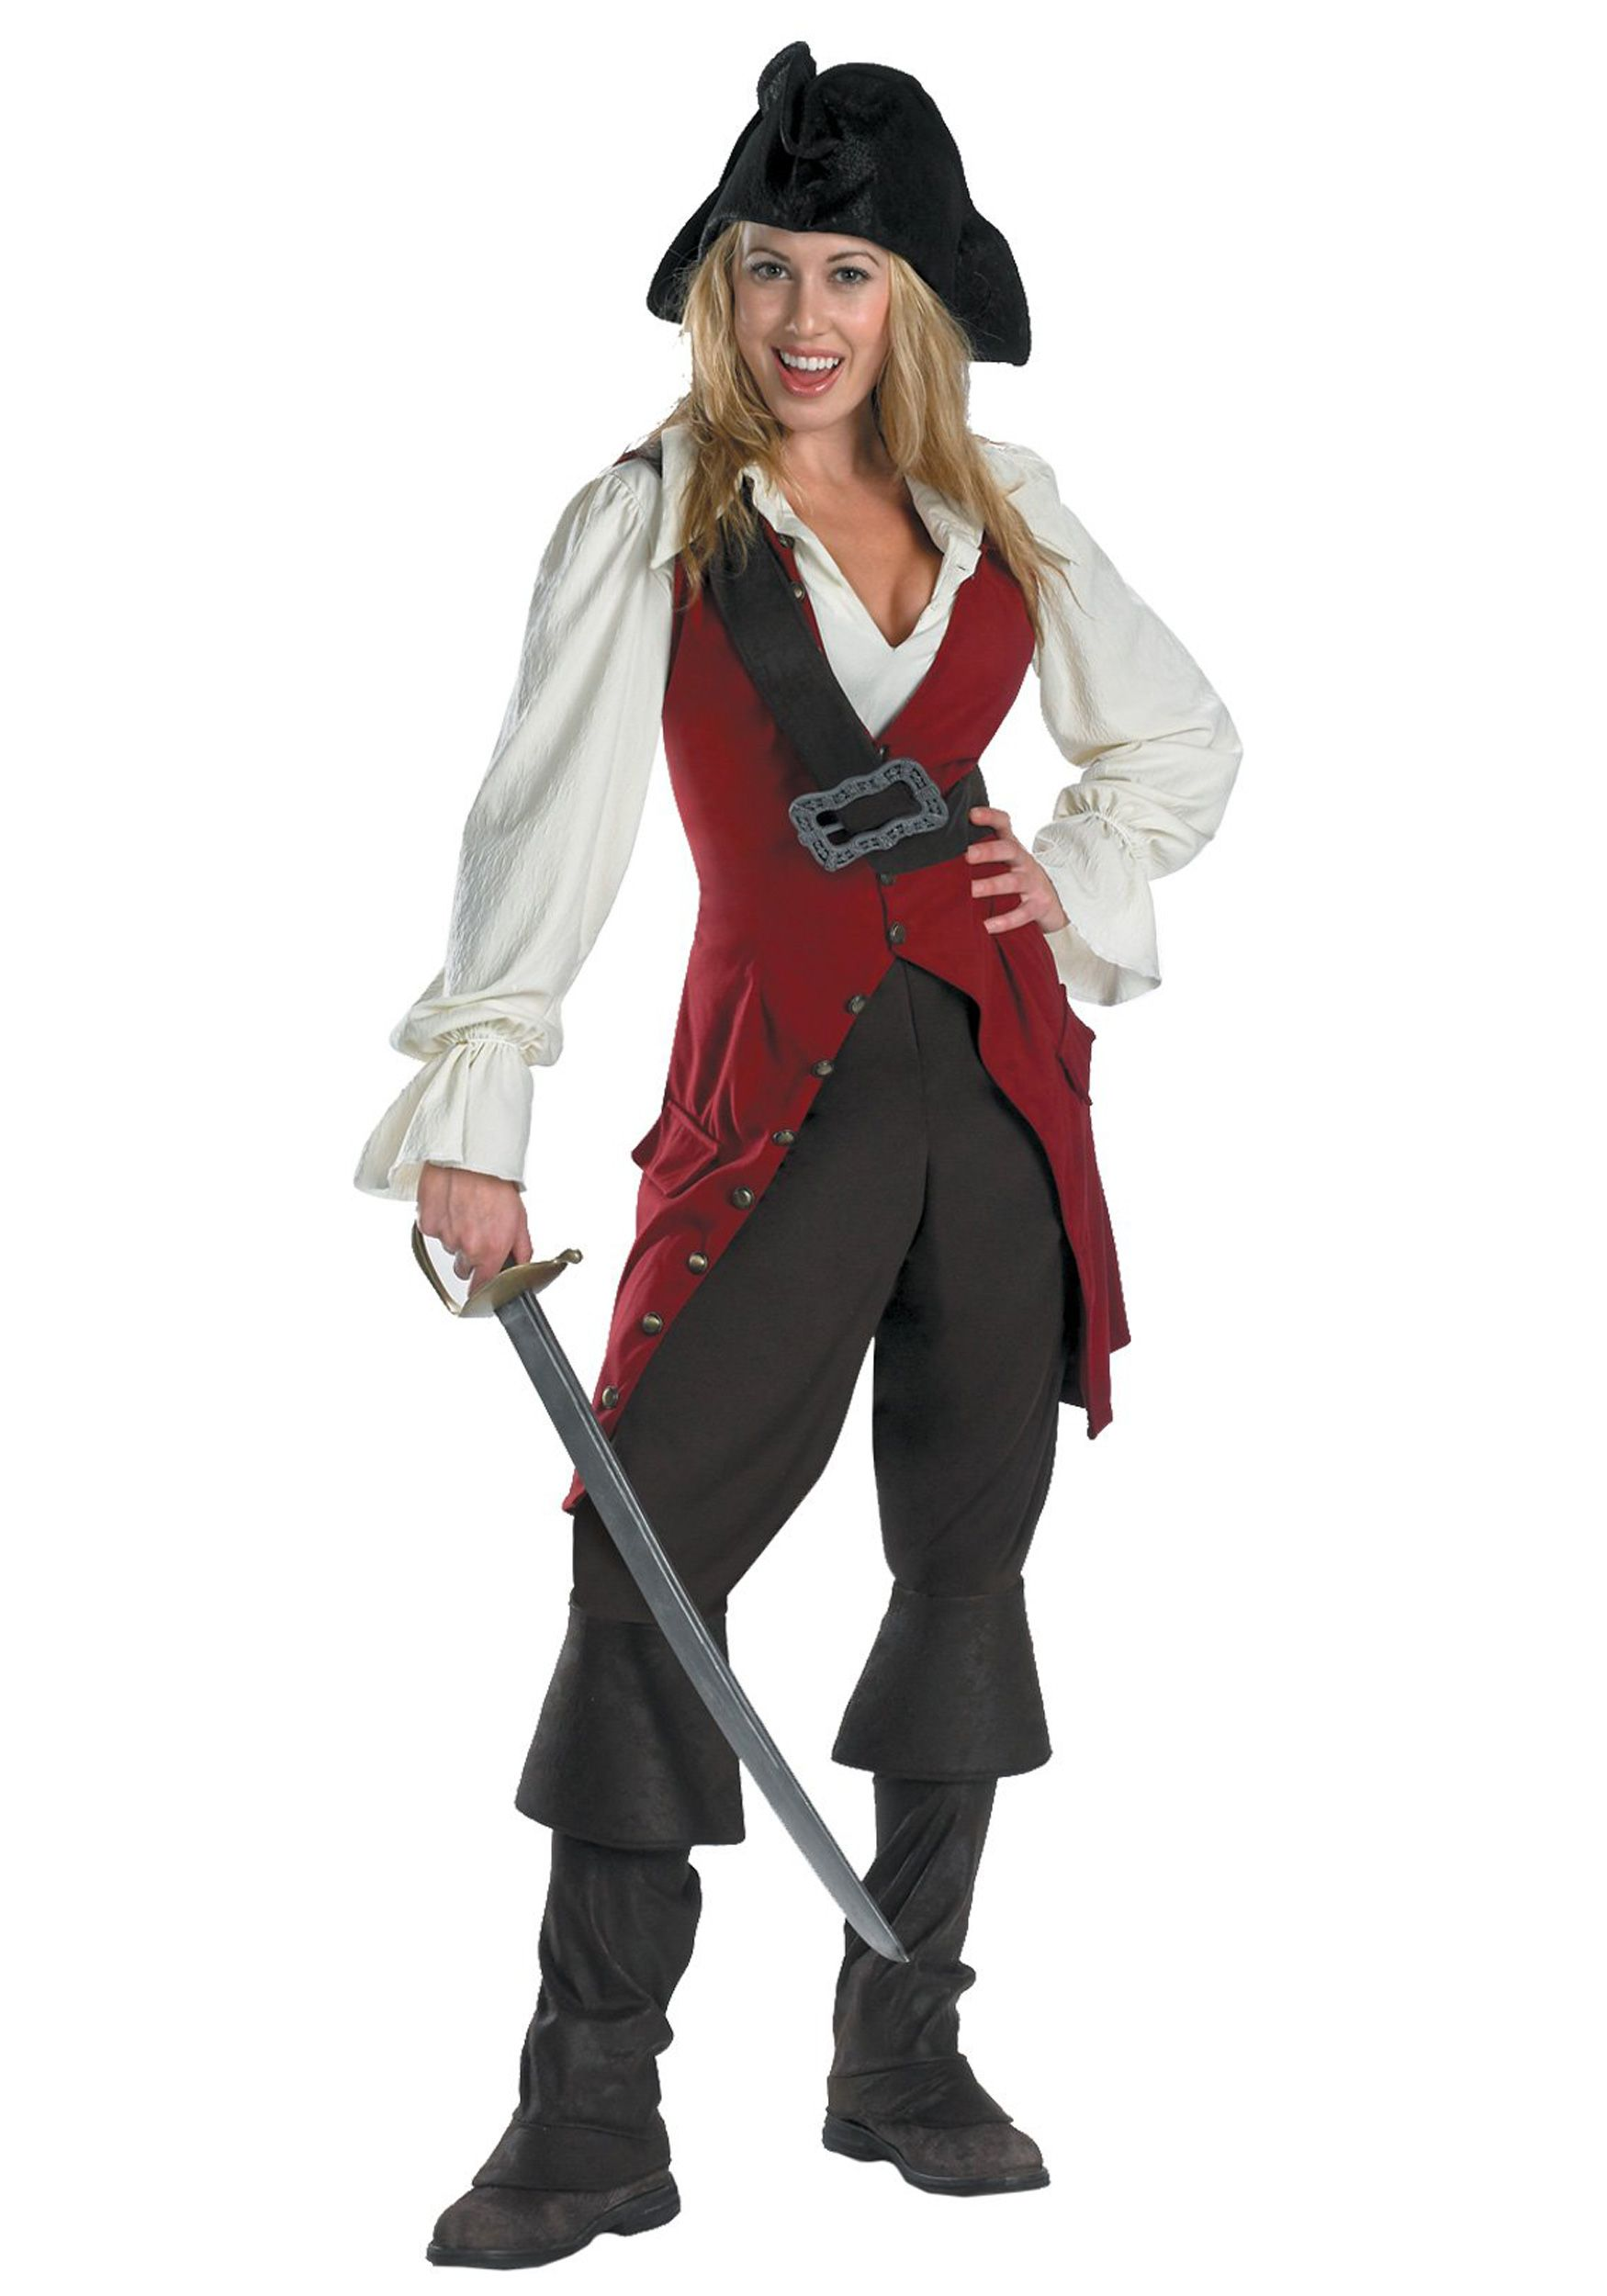 b6dc73f8e53a0 Elizabeth Swann Adult Pirate Costume - Pirates of the Caribbean ...